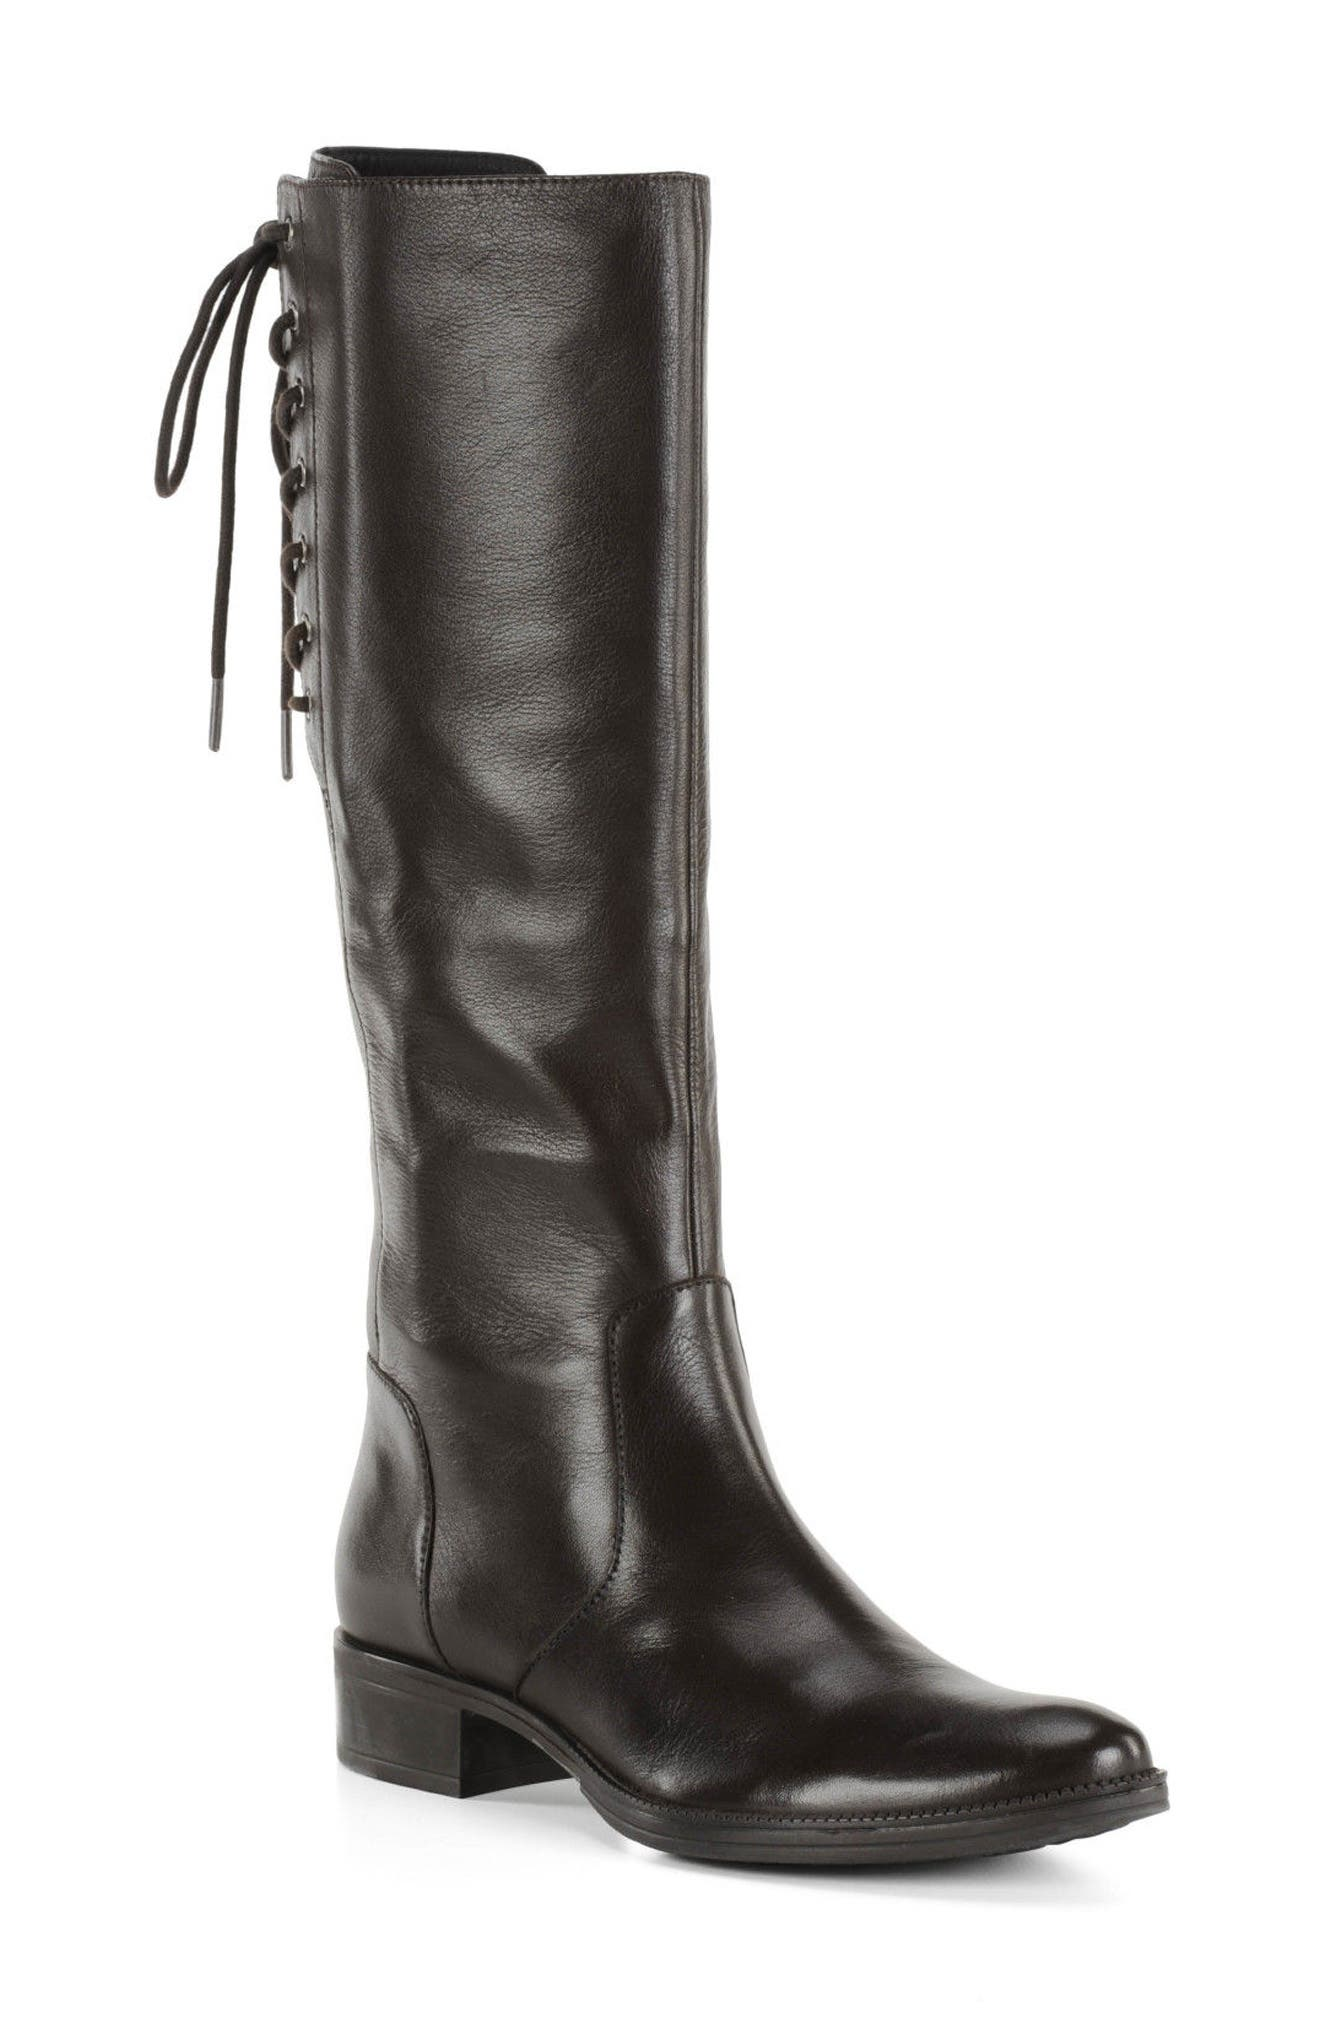 Mendi Tall Boot,                             Main thumbnail 1, color,                             Coffee Leather